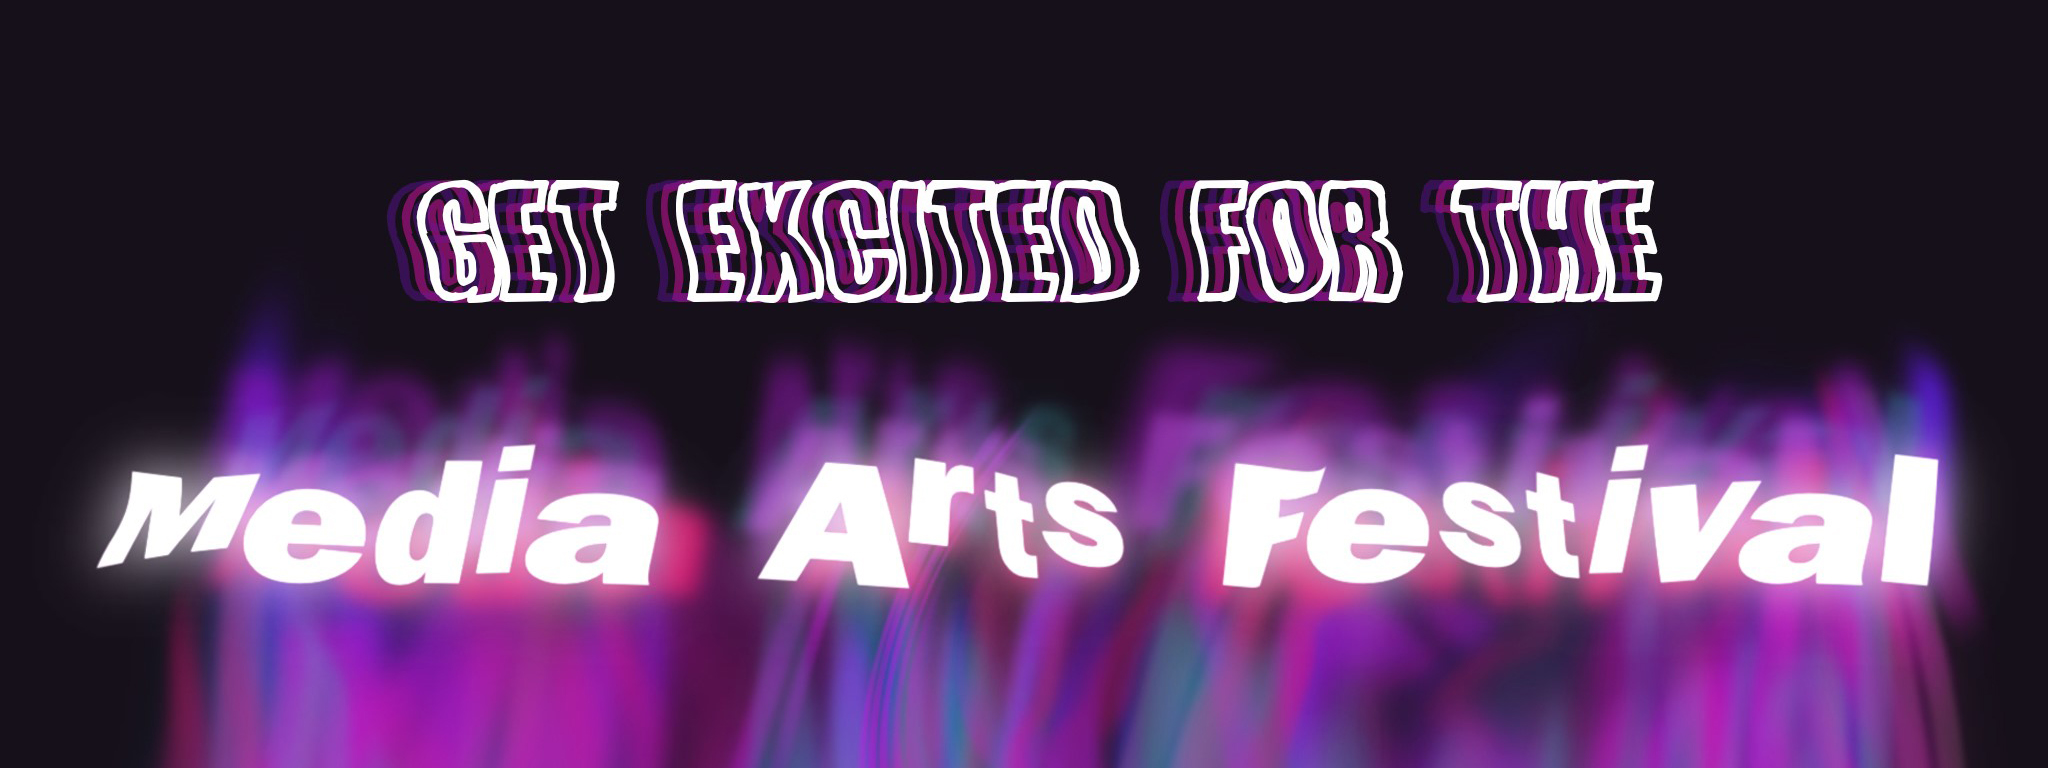 Get Excited for the Media Arts Festival